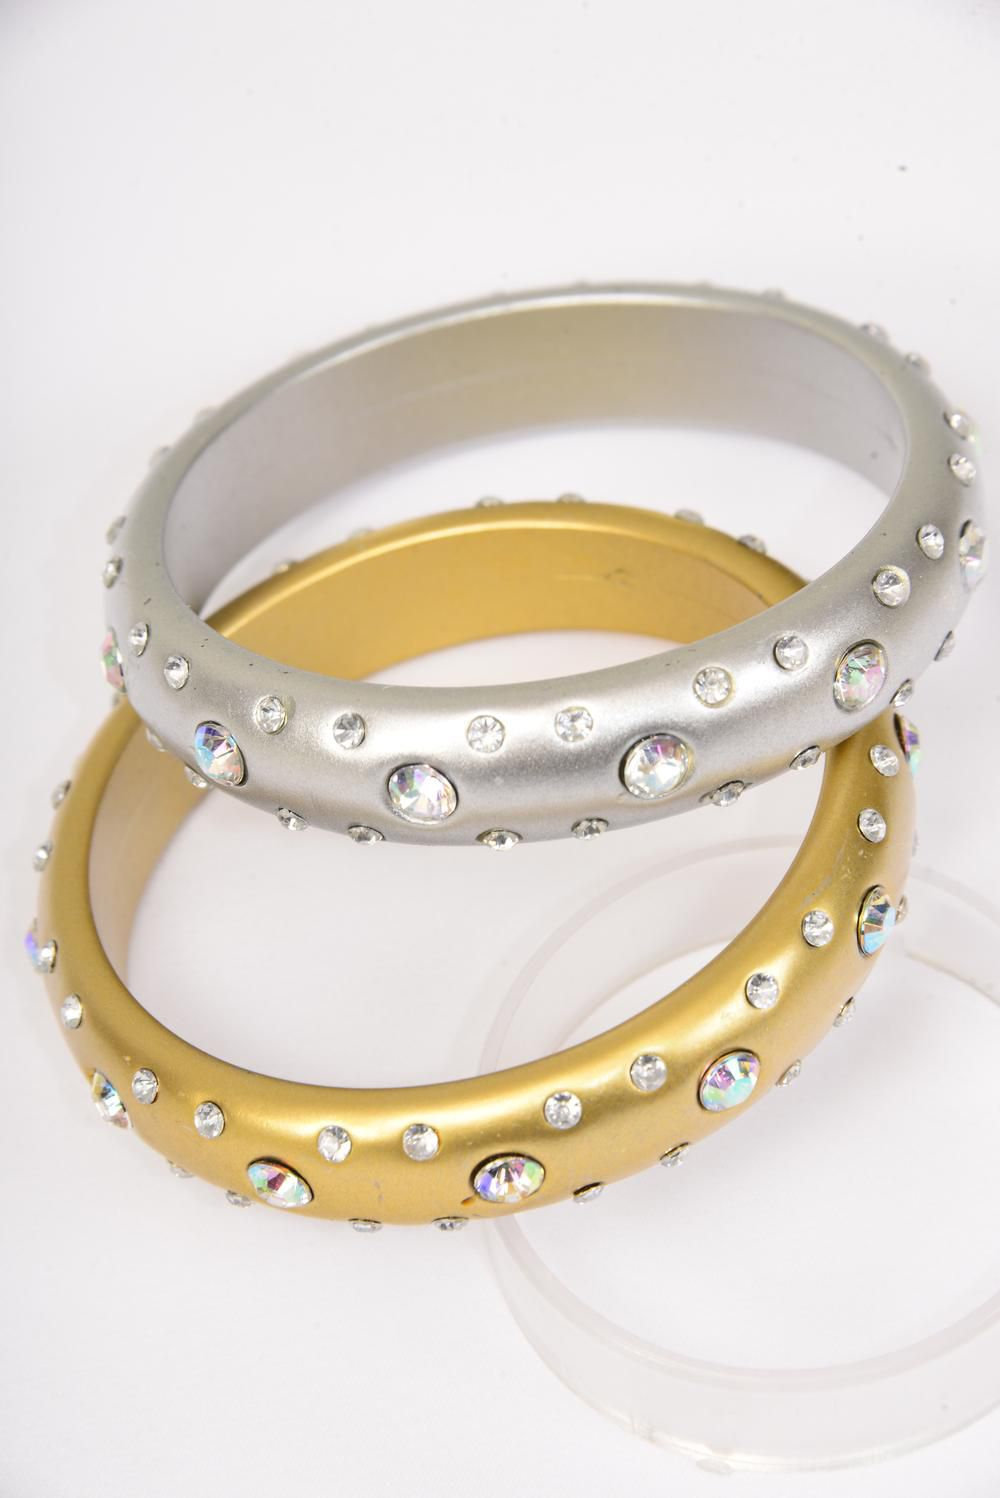 "Bangle Acrylic Fall Matte AB Stones Gold & Silver Mix/DZ Size-2.75""x 0.75"" Dia Wide,6 Gold & 6 Silver Mix,Hang tag & Opp bag & UPC Code -"